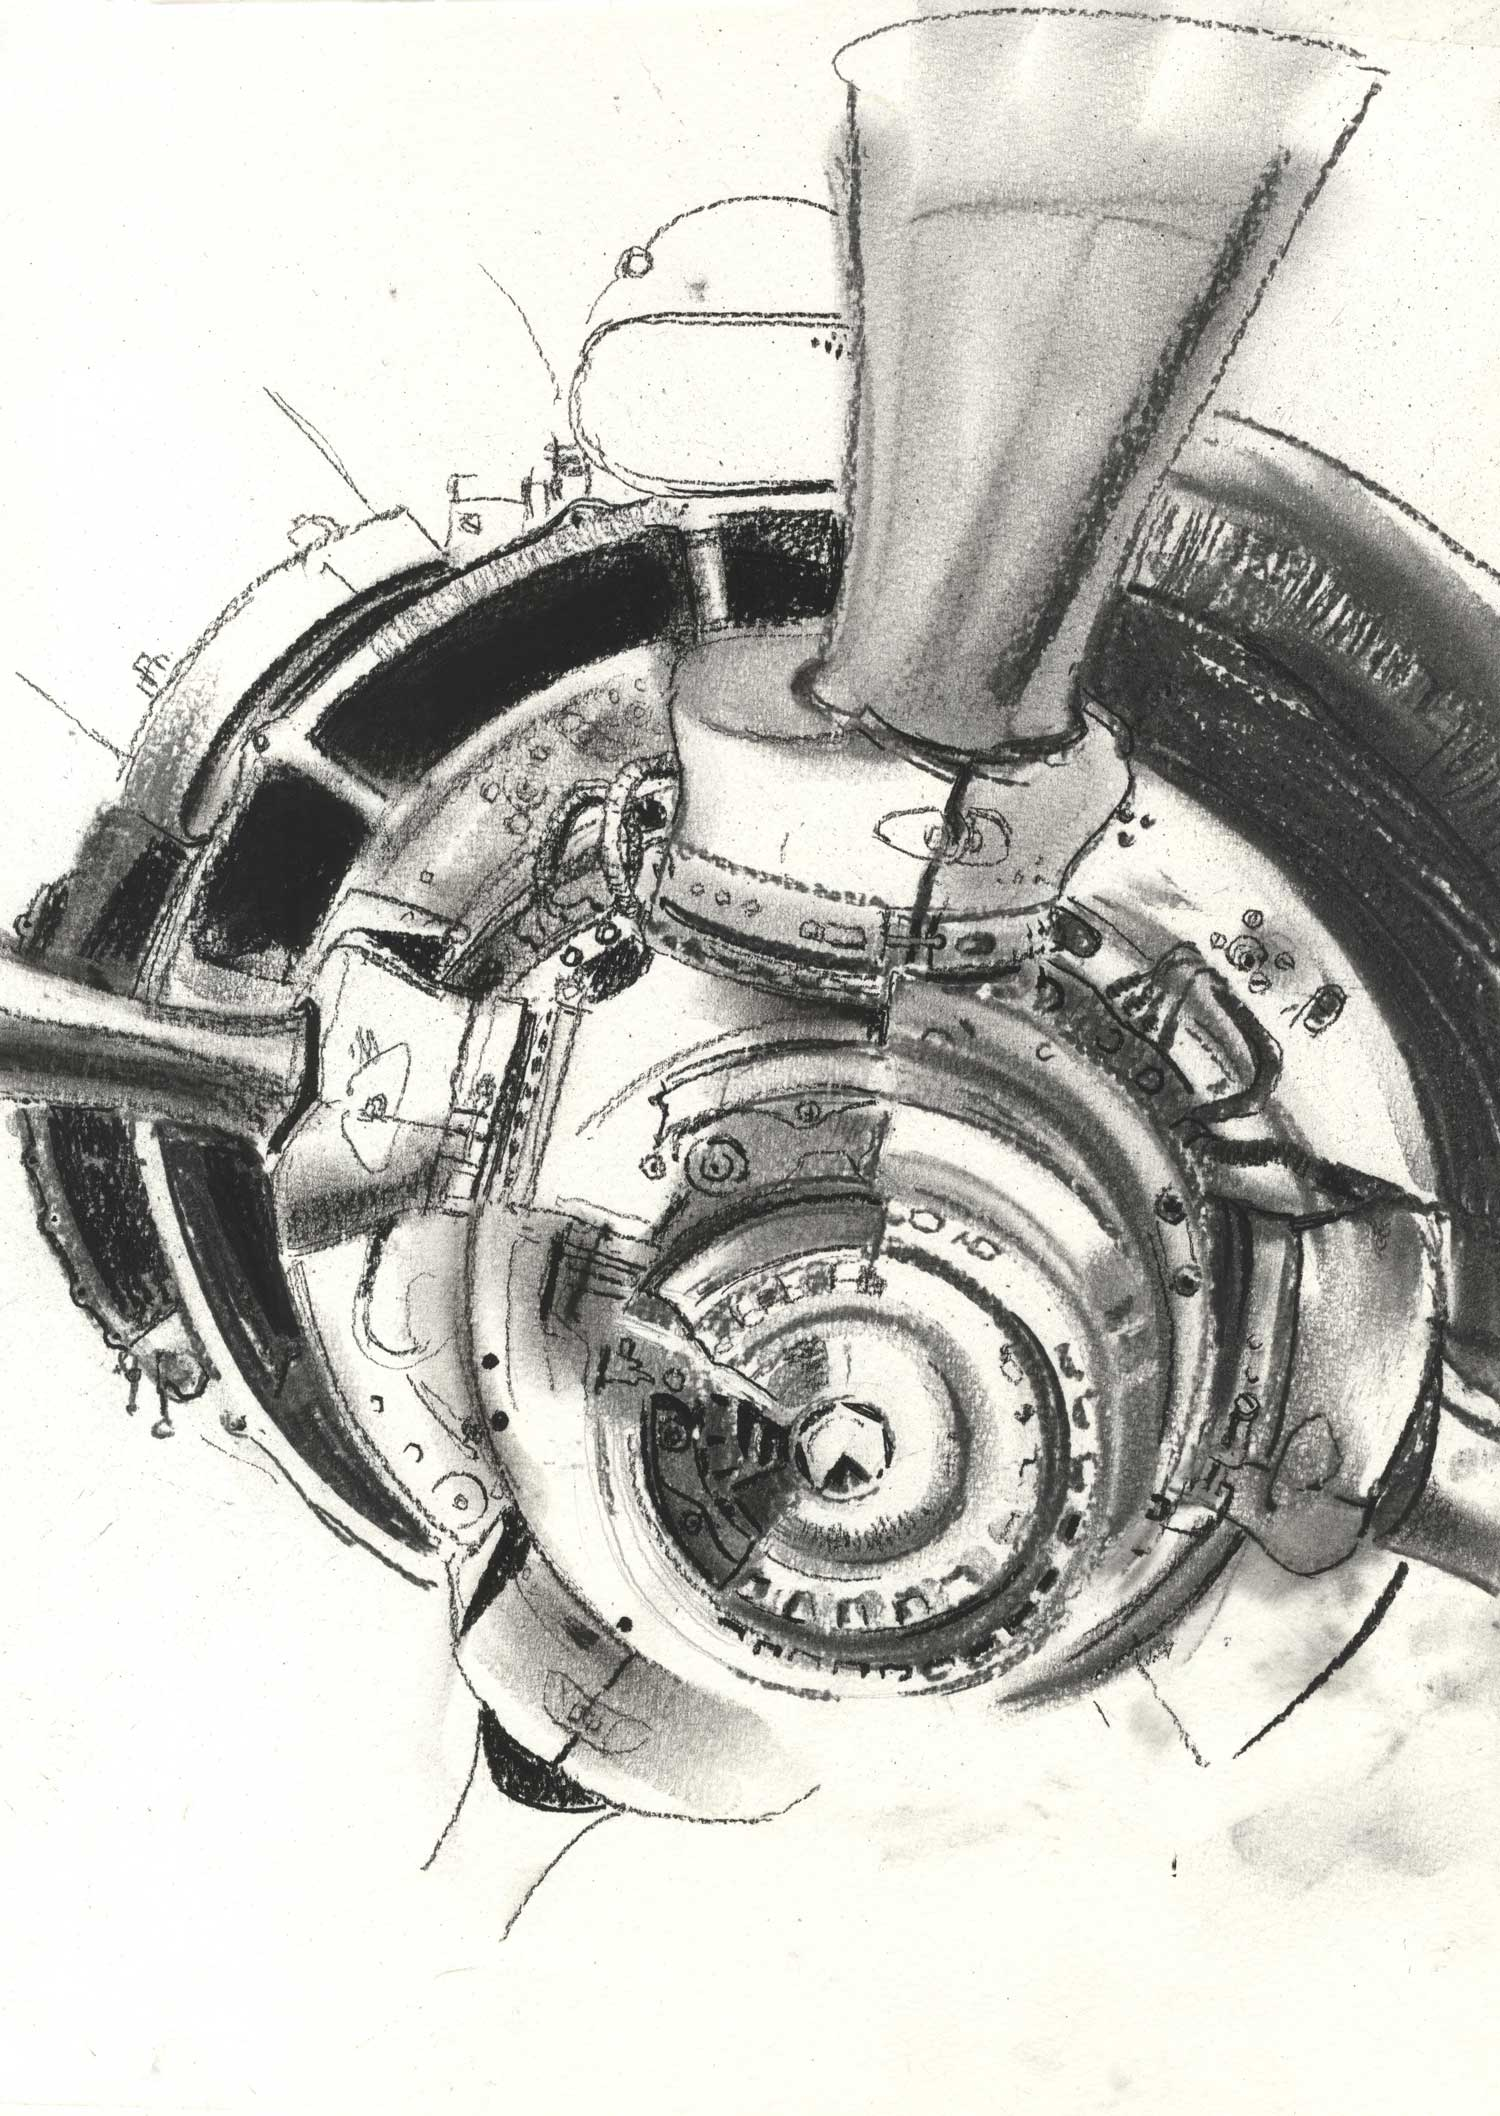 Cross section of airplane engine, Knightstone Tearooms, Yelverton